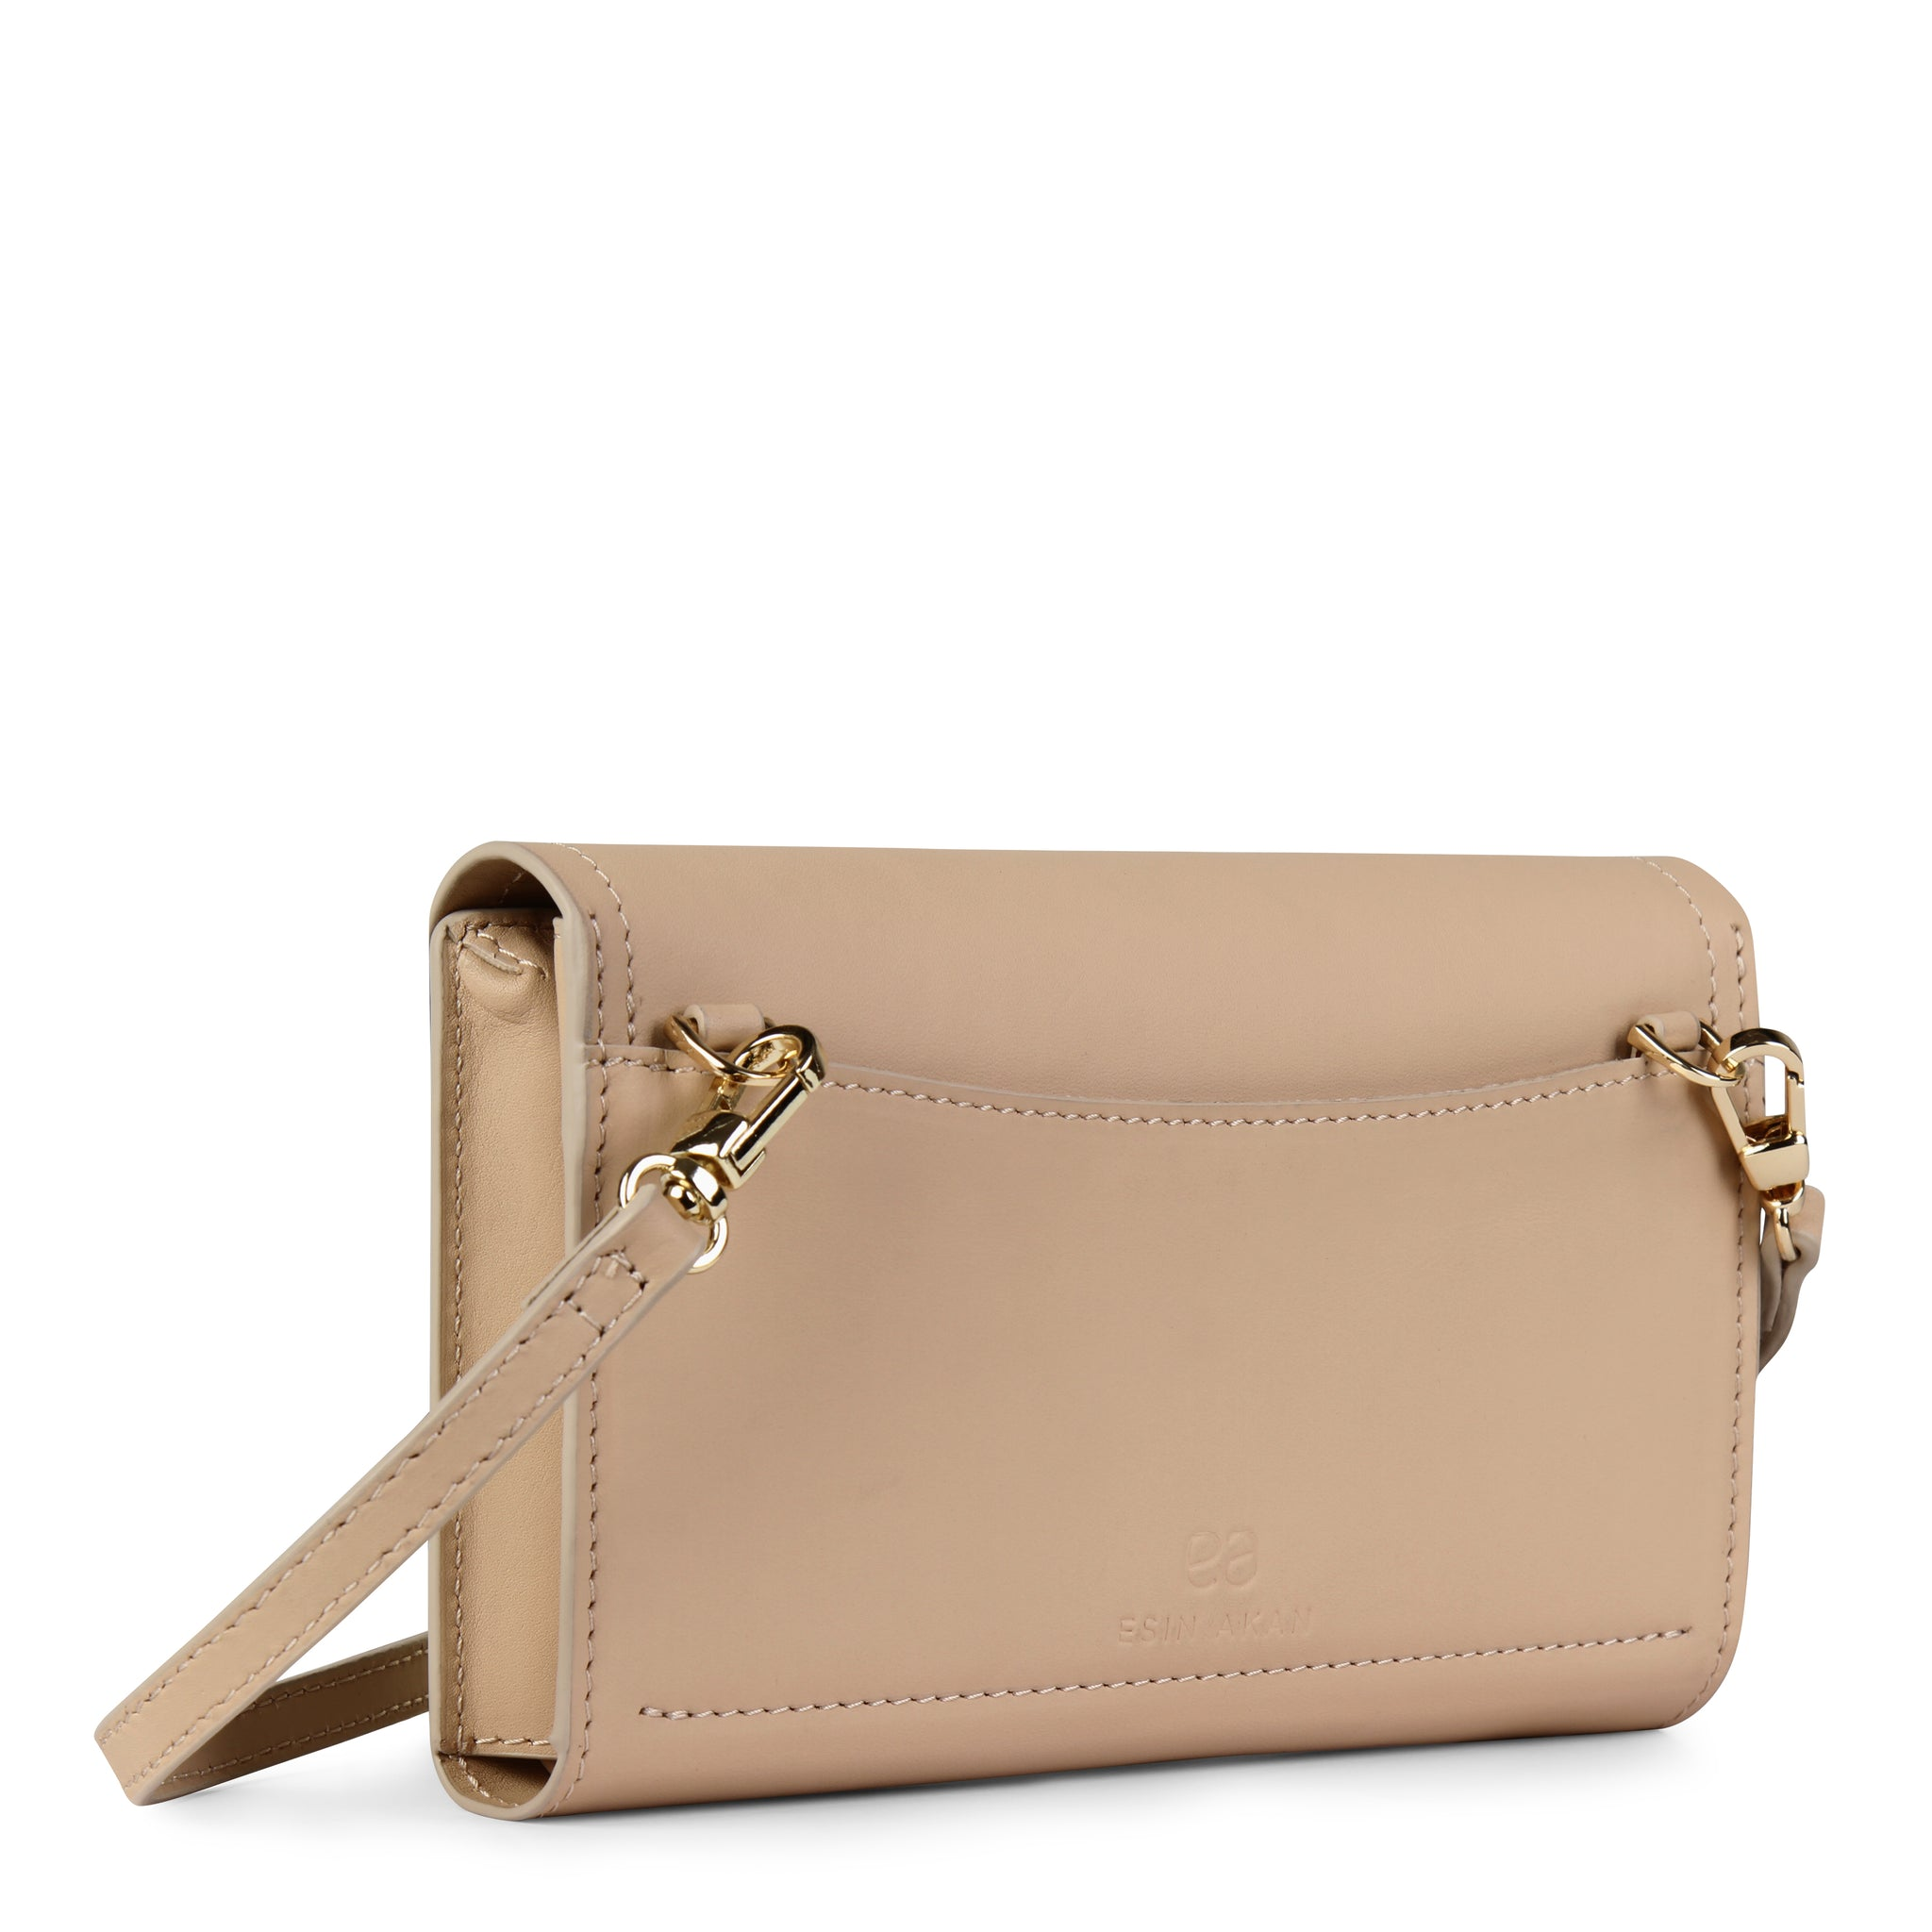 A convertible leather nude phone wallet with a knot detail in front that could be used as a crossbody bag, back image.